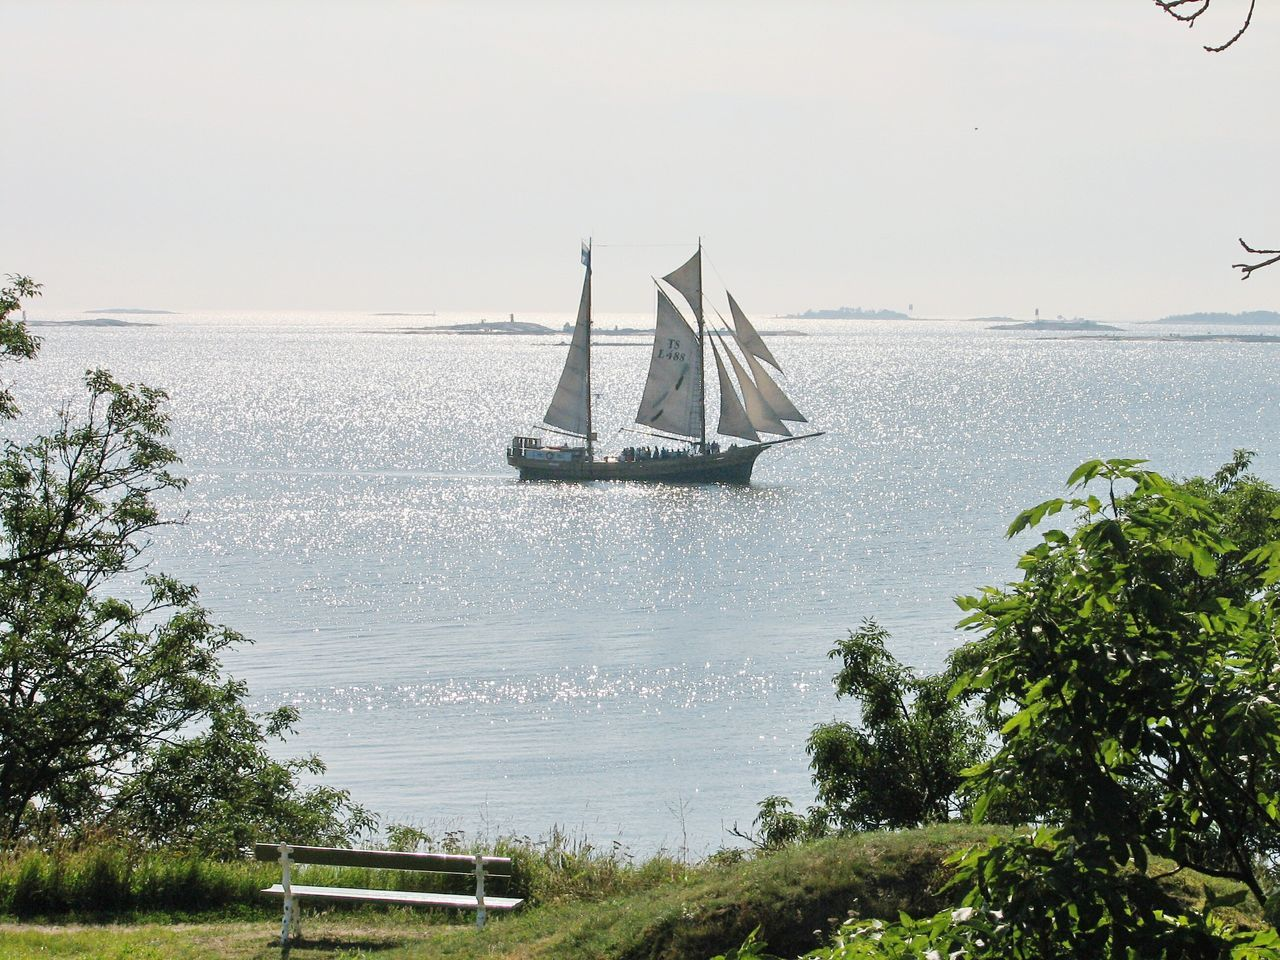 Schooner Ship Boat Sails Sailship Sea Sea And Sky Sunshine Summer Gulf Of Finland Nautical Vessel Transportation Mode Of Transport Tree Water Boat Sailboat Tranquil Scene Tranquility Clear Sky Scenics Nature Sea Day Outdoors suomenlinna rocks helsinki